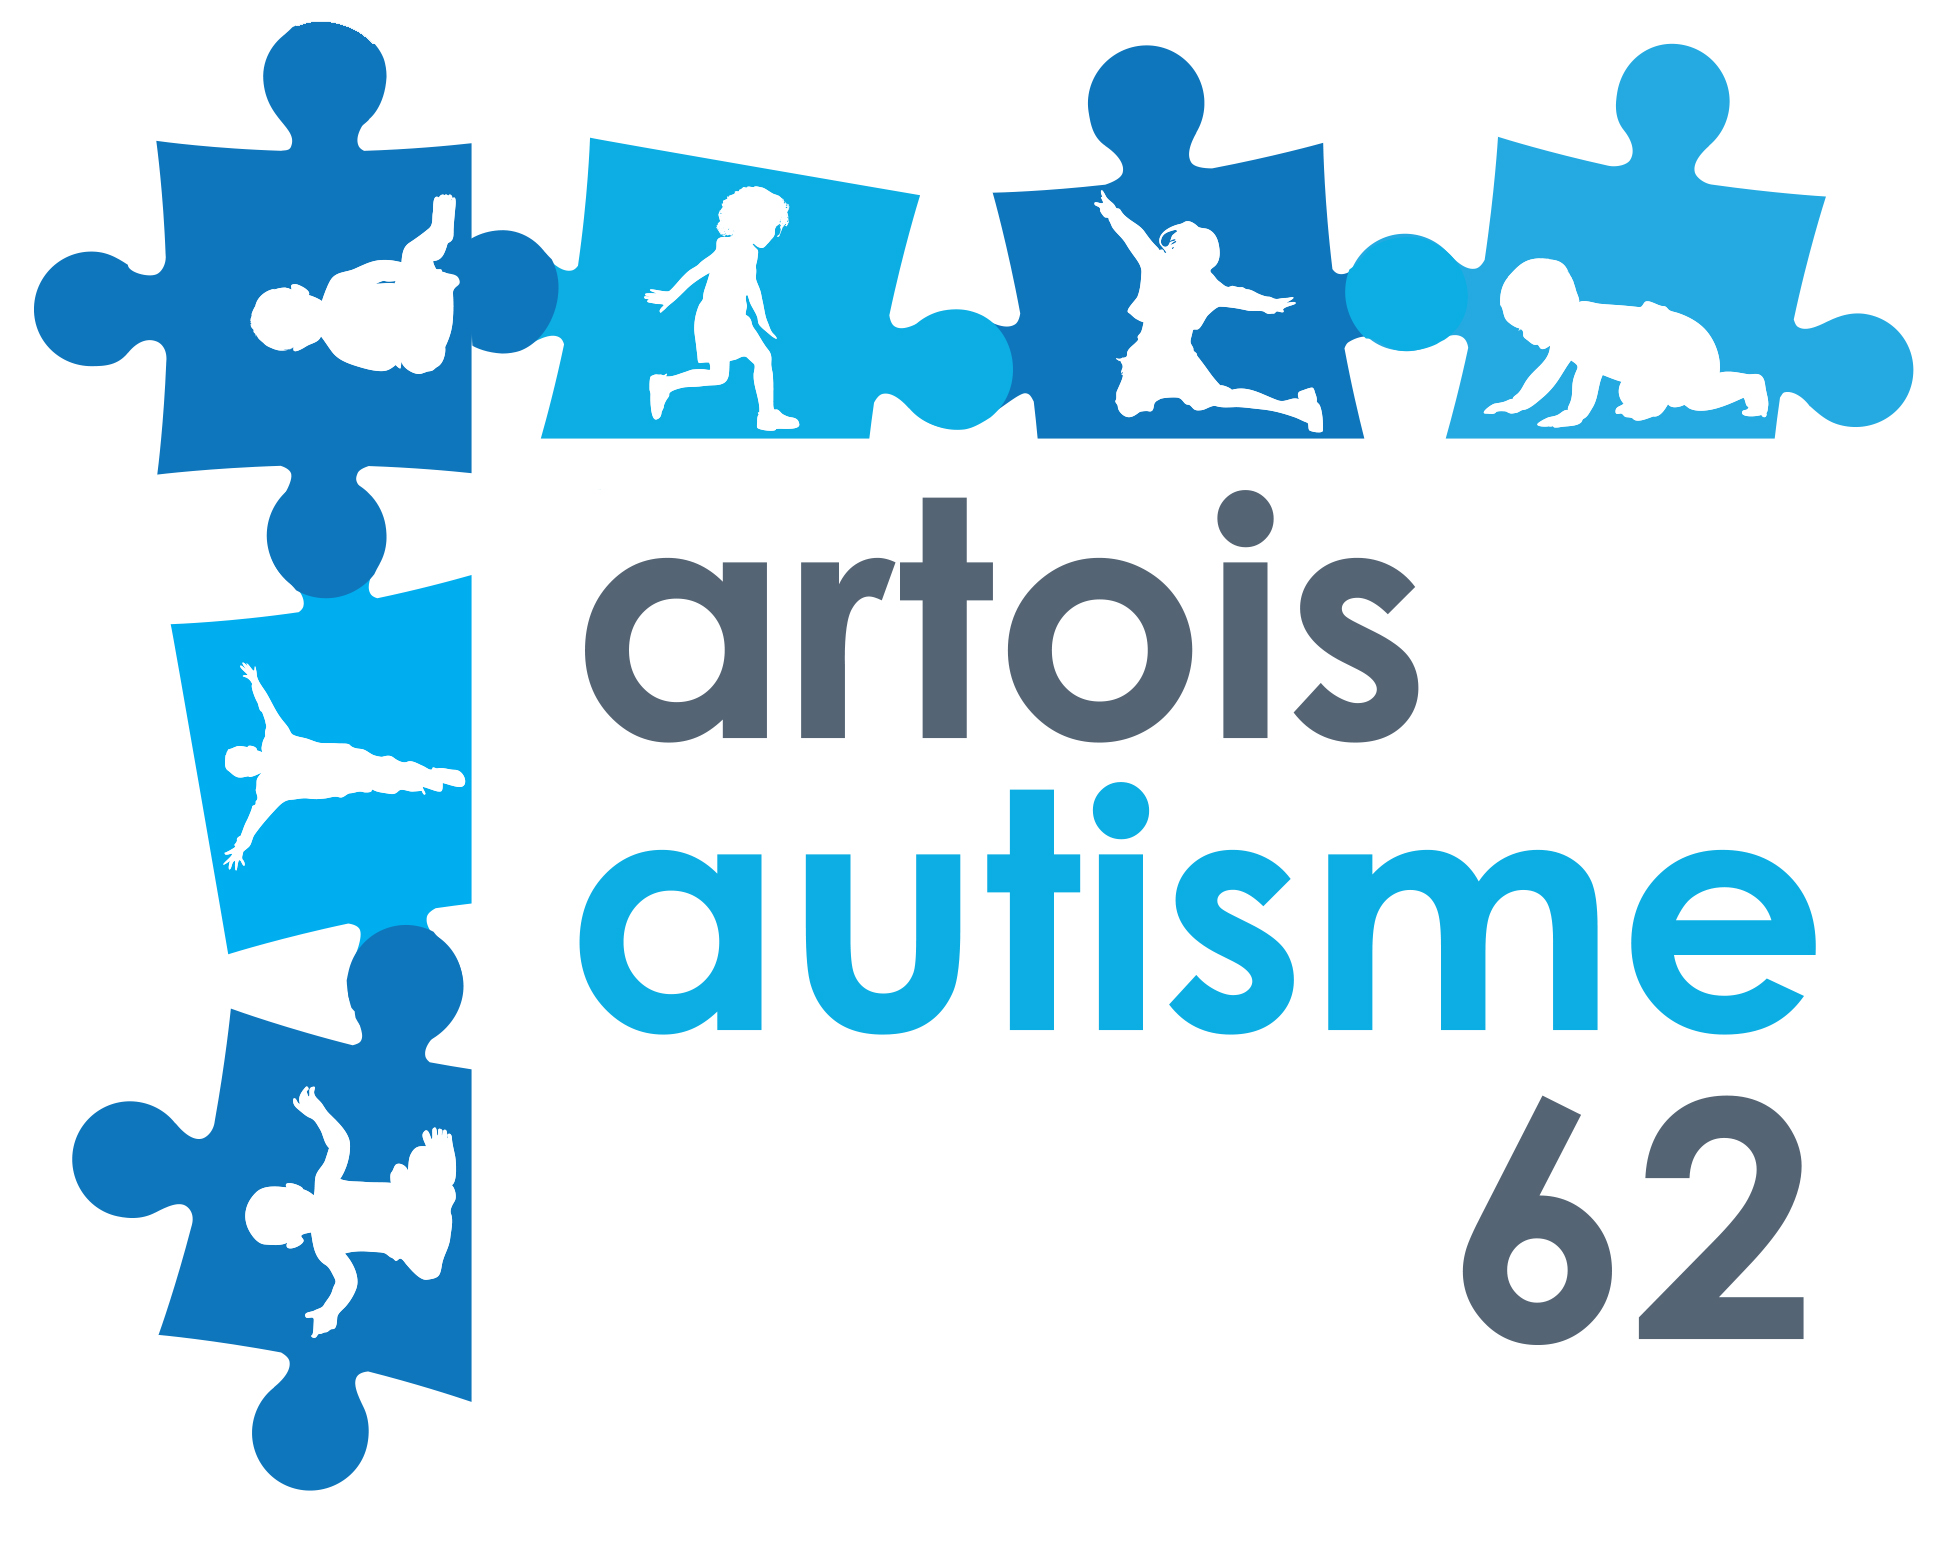 Association - Artois autisme 62